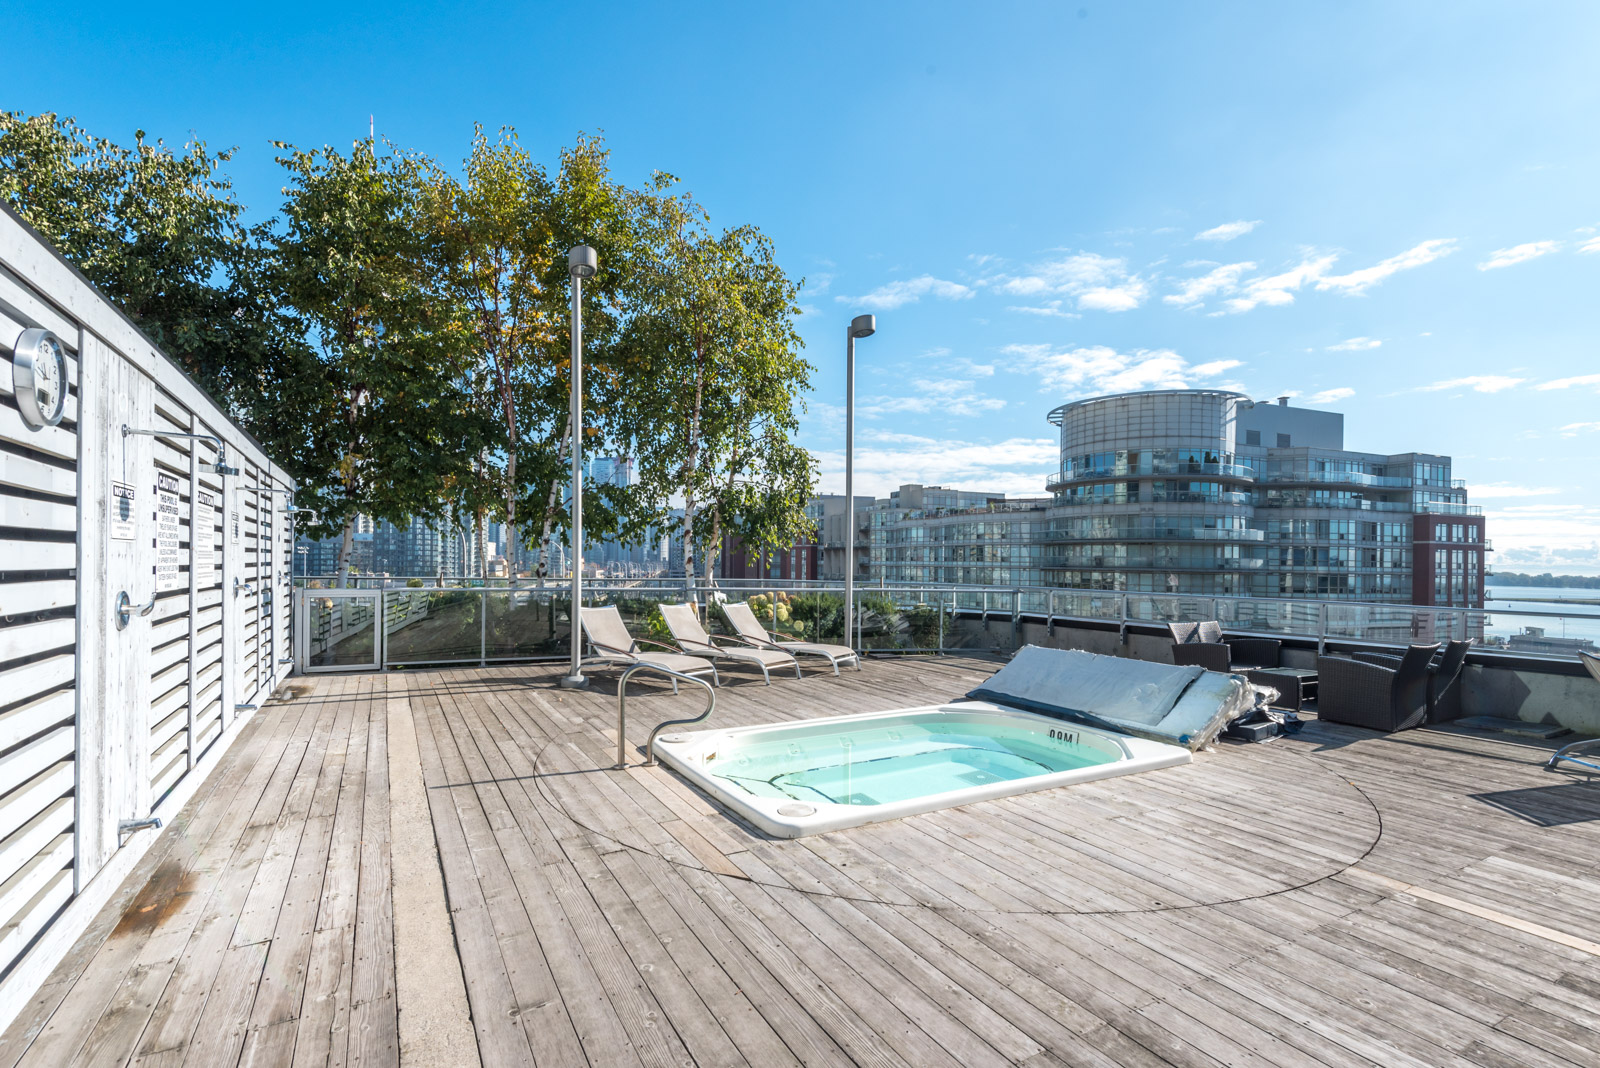 Picture of condo's roof and also hot-tub and chairs.